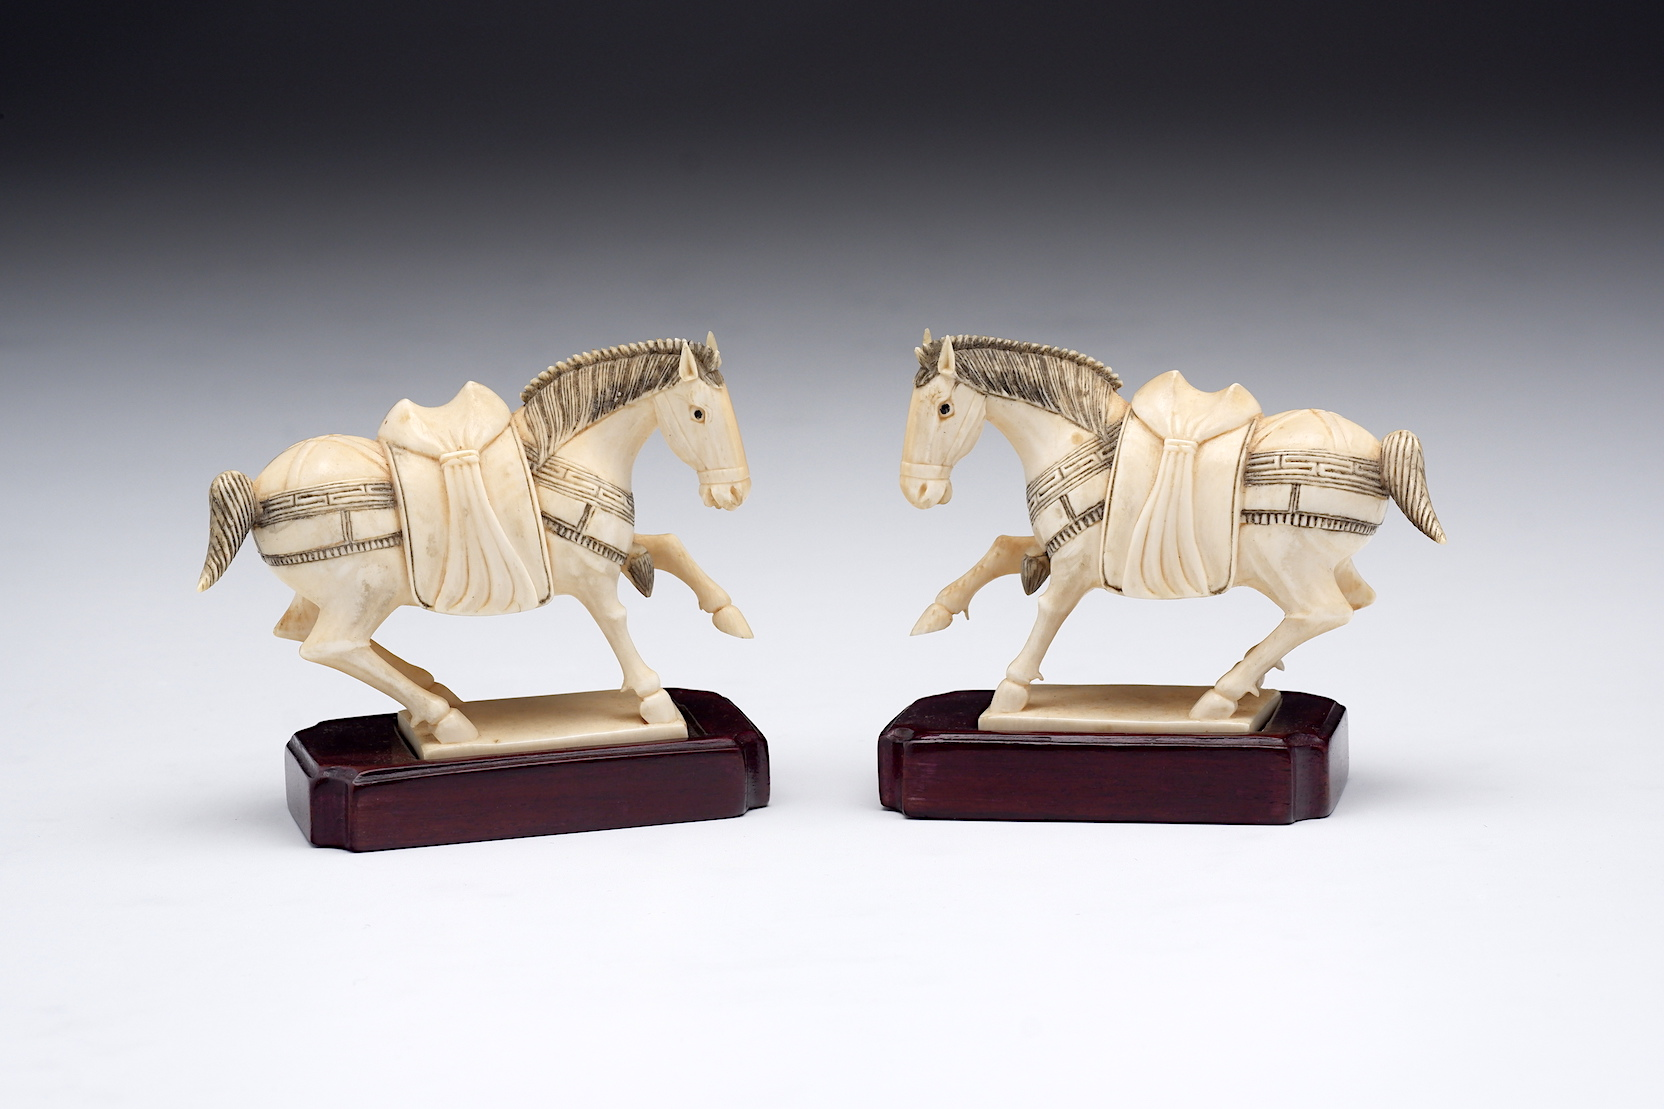 'Pair of Chinese Finely Carved and Engraved Elephant Ivory Horses on Fitted Hardwood Stands, Early to Mid 20th Century'